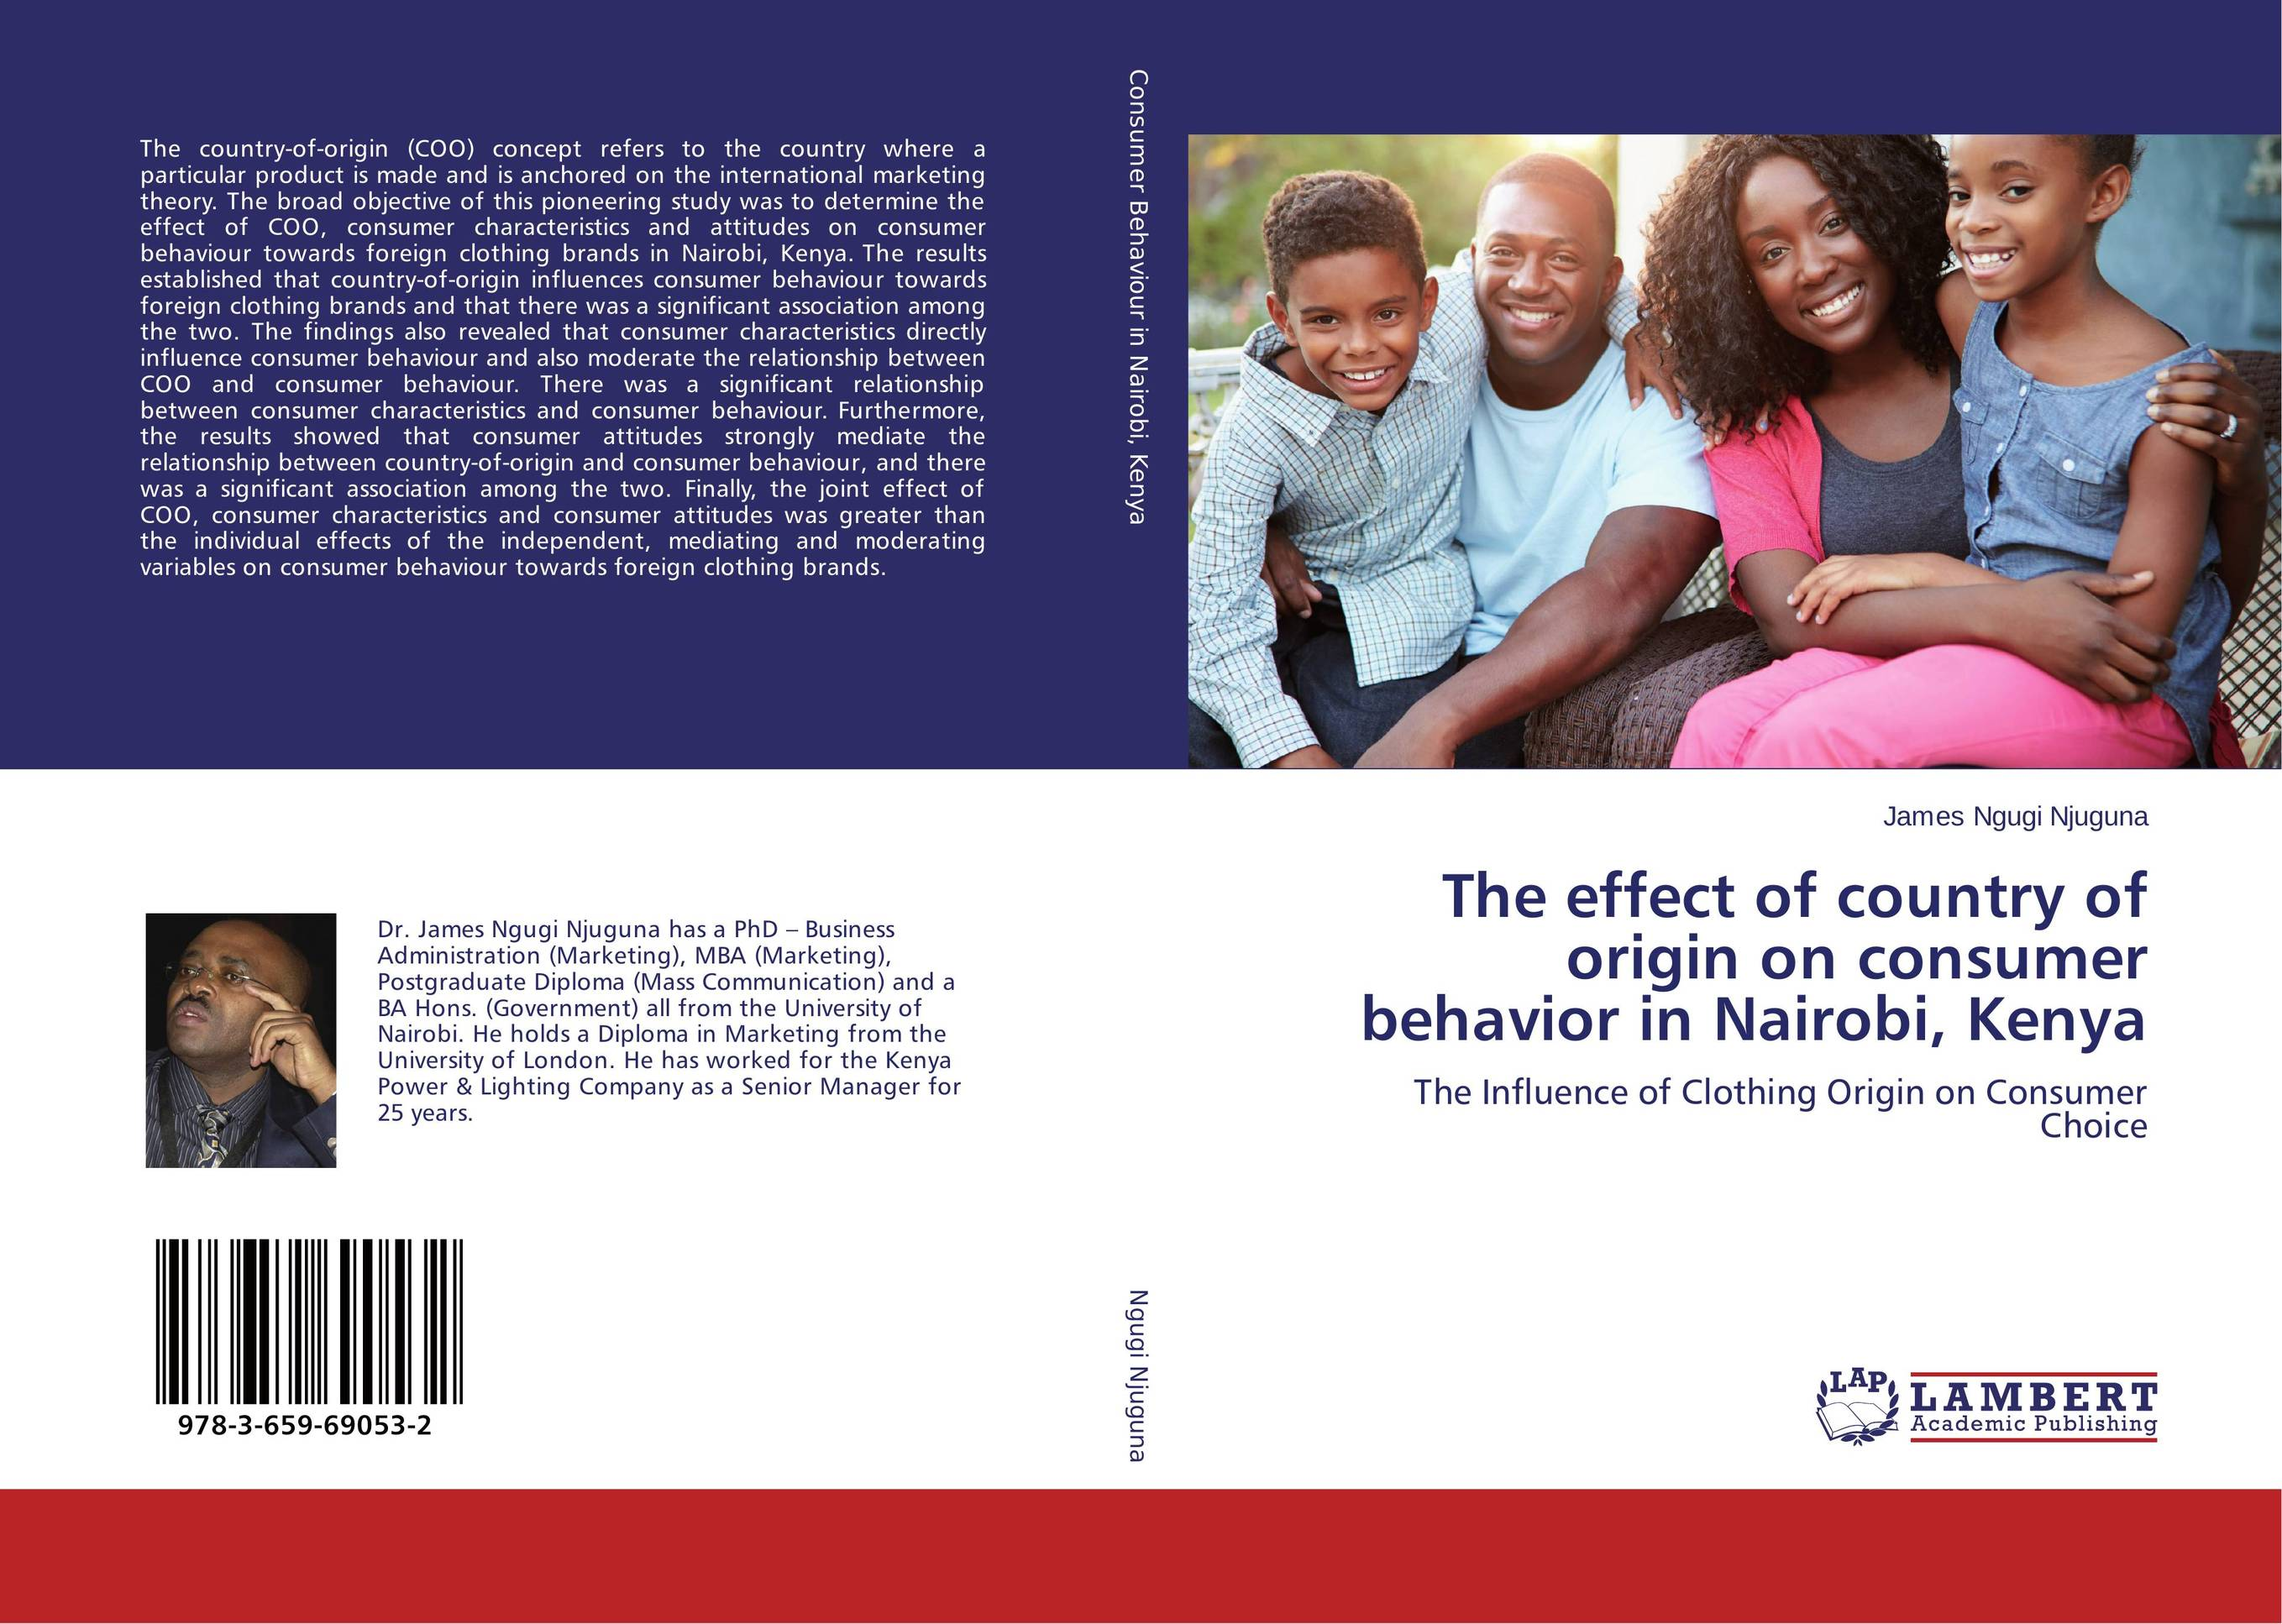 The effect of country of origin on consumer behavior in Nairobi, Kenya the effect of advertisement on consumer behavior and brand preference